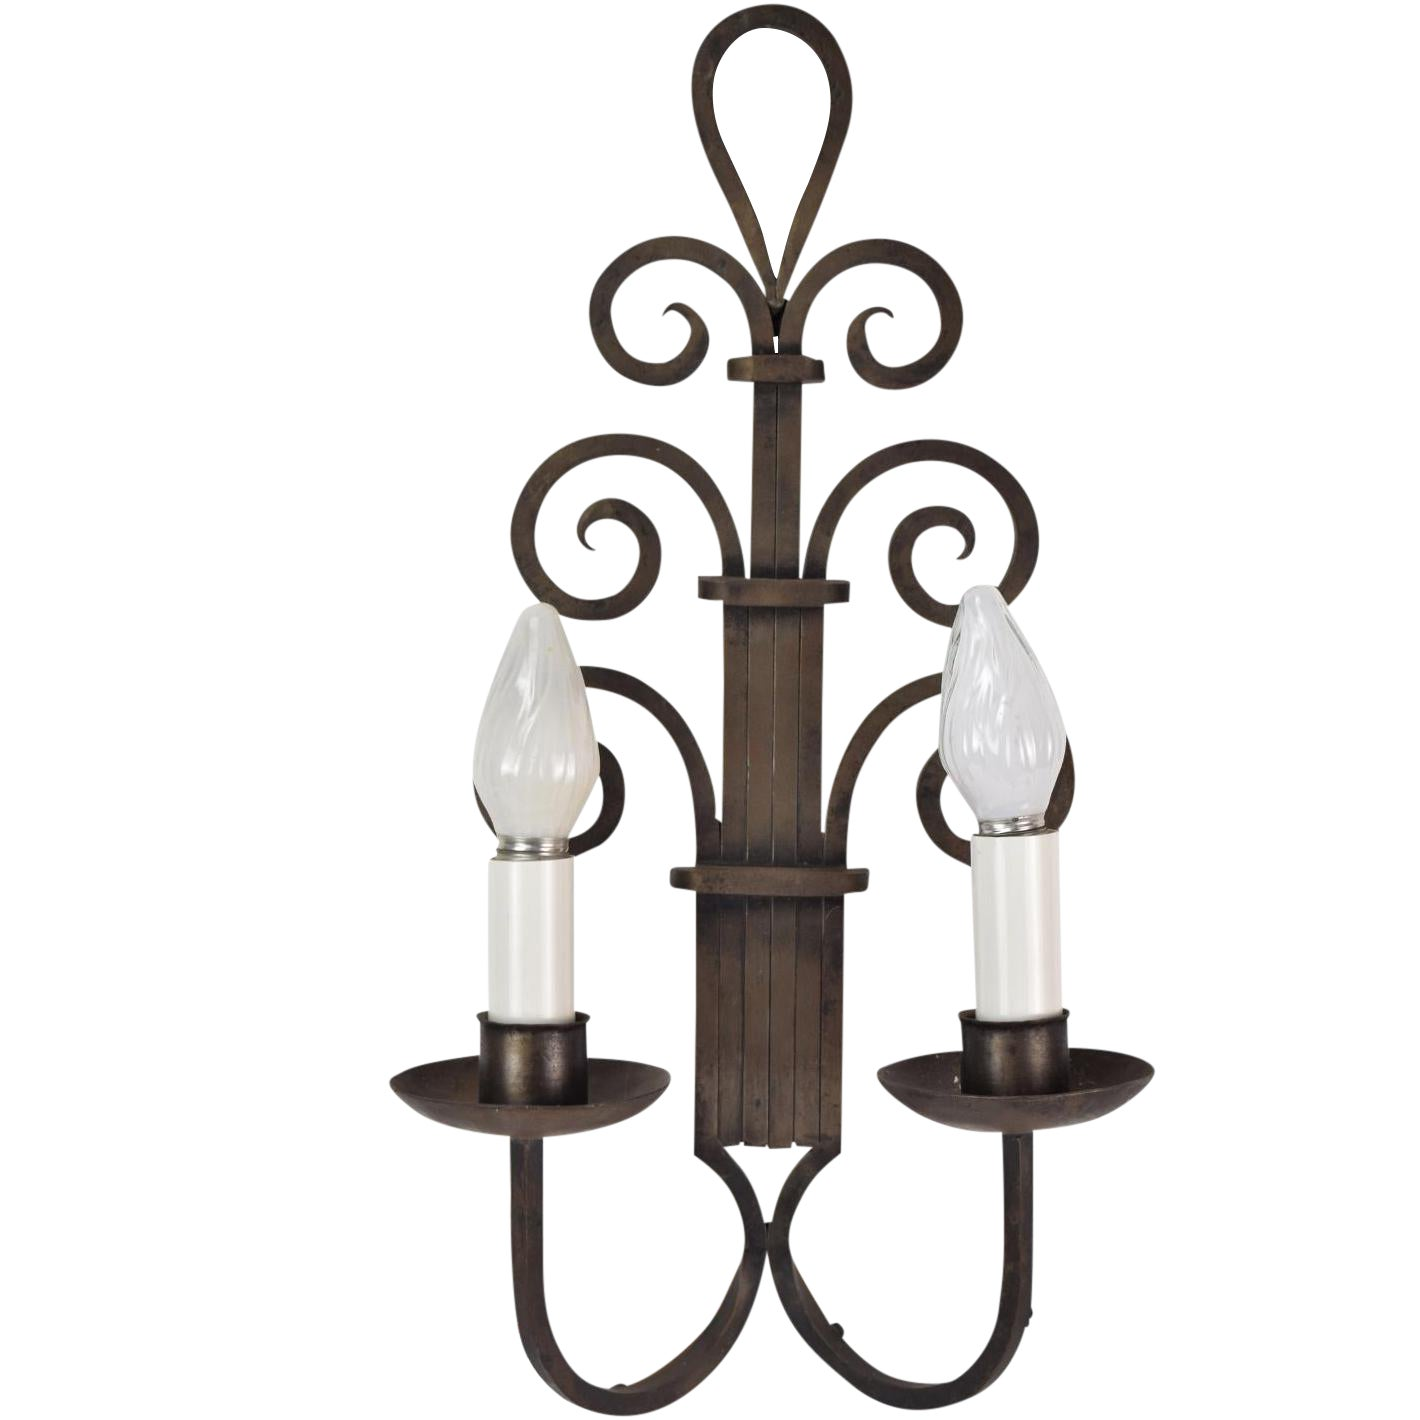 Large 1930s Art Deco Gothic Wrought Iron Scroll Wall Sconce Chairish